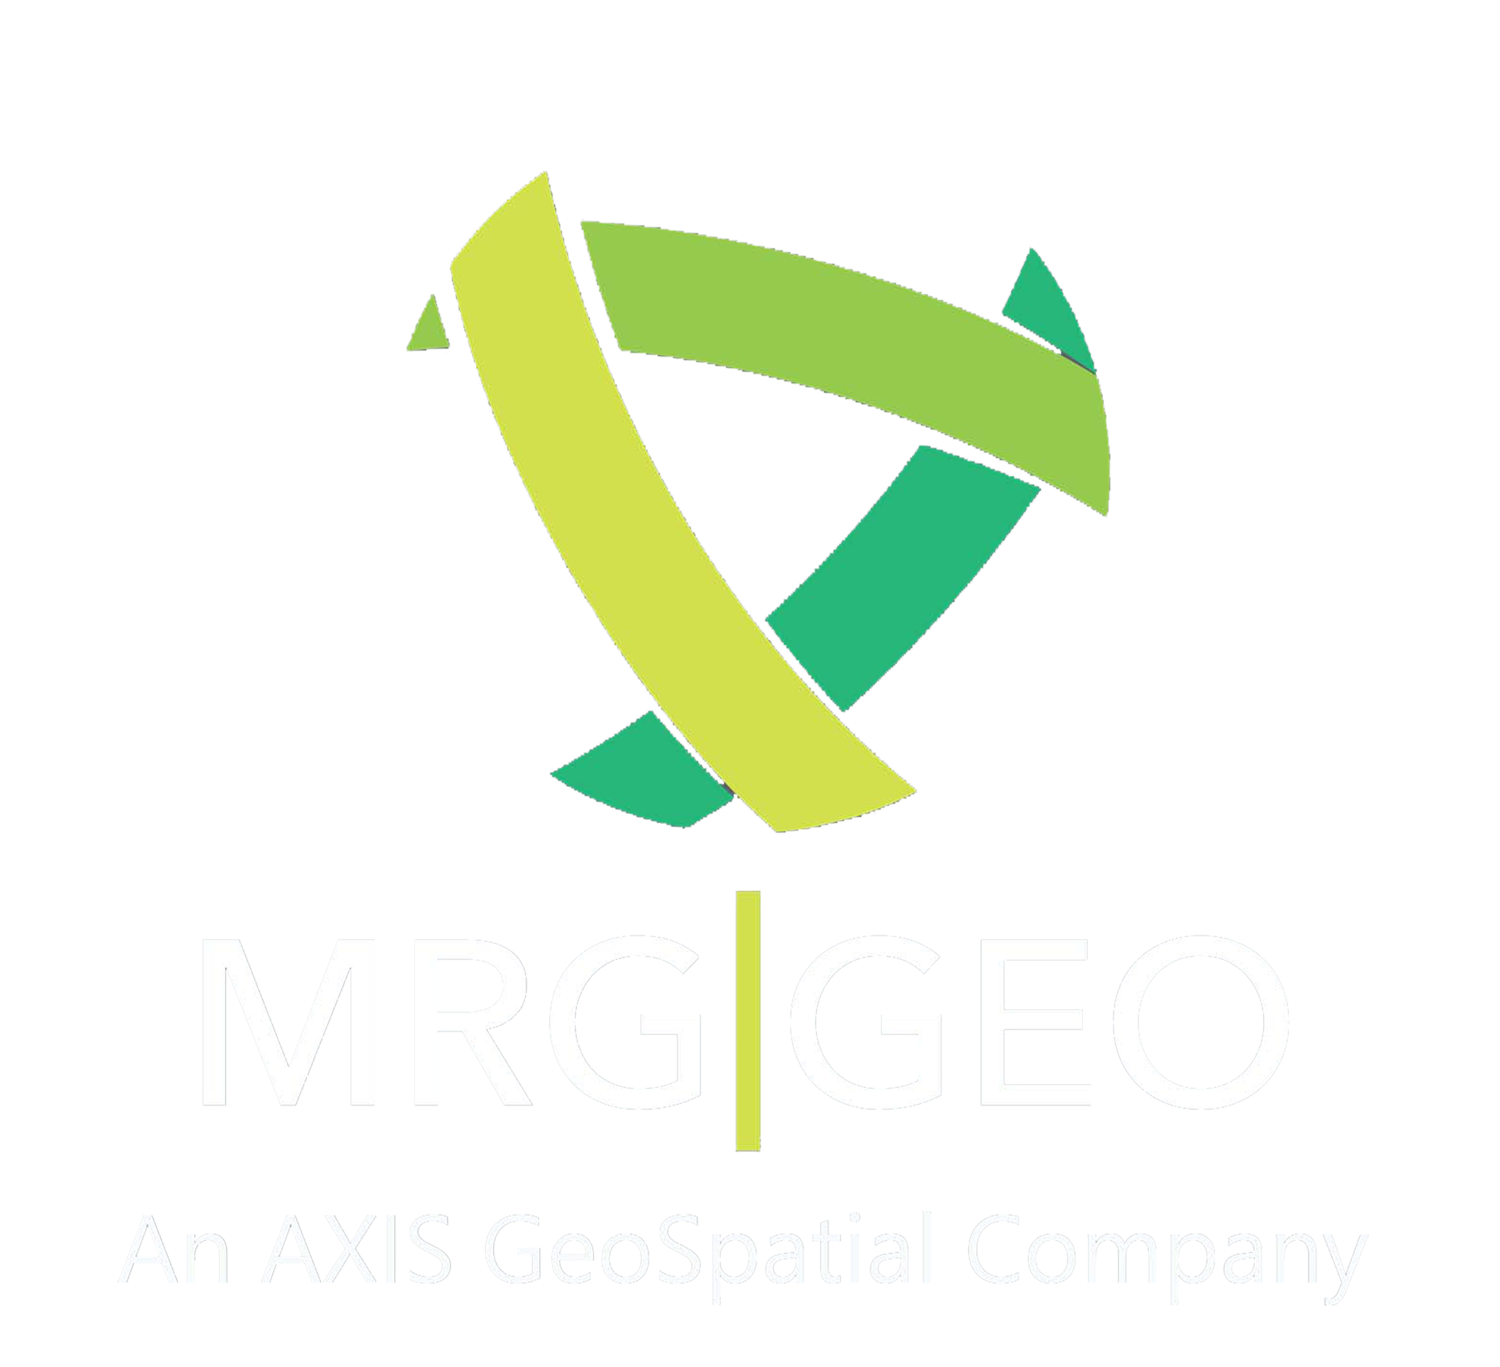 MRG GEO is now AXIS GeoSpatial